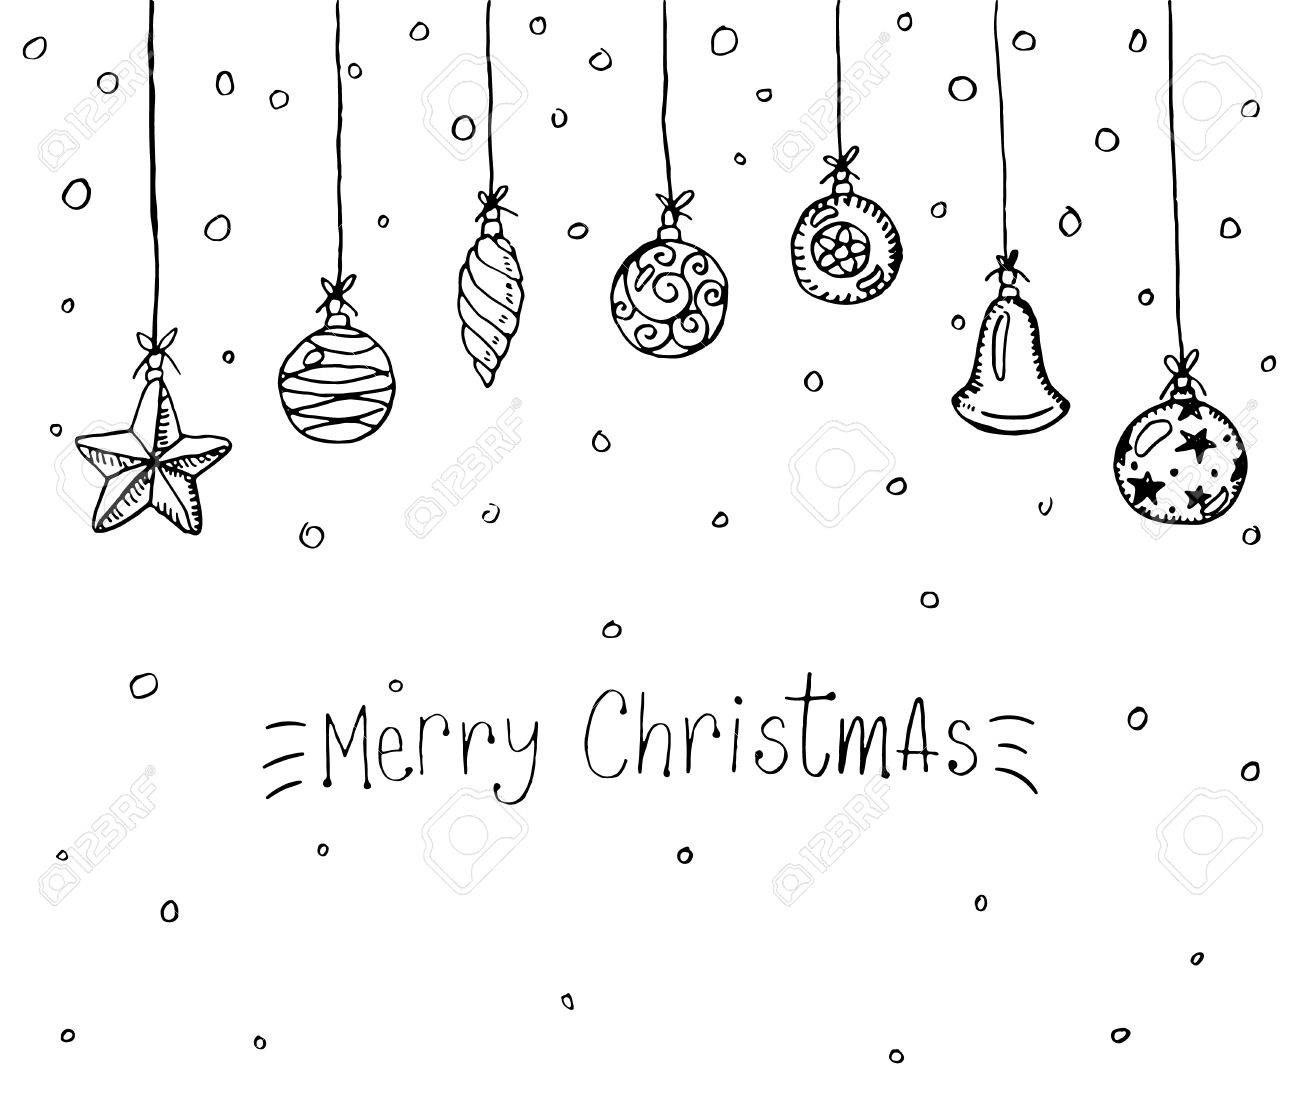 Merry Christmas Doodle Greeting Card